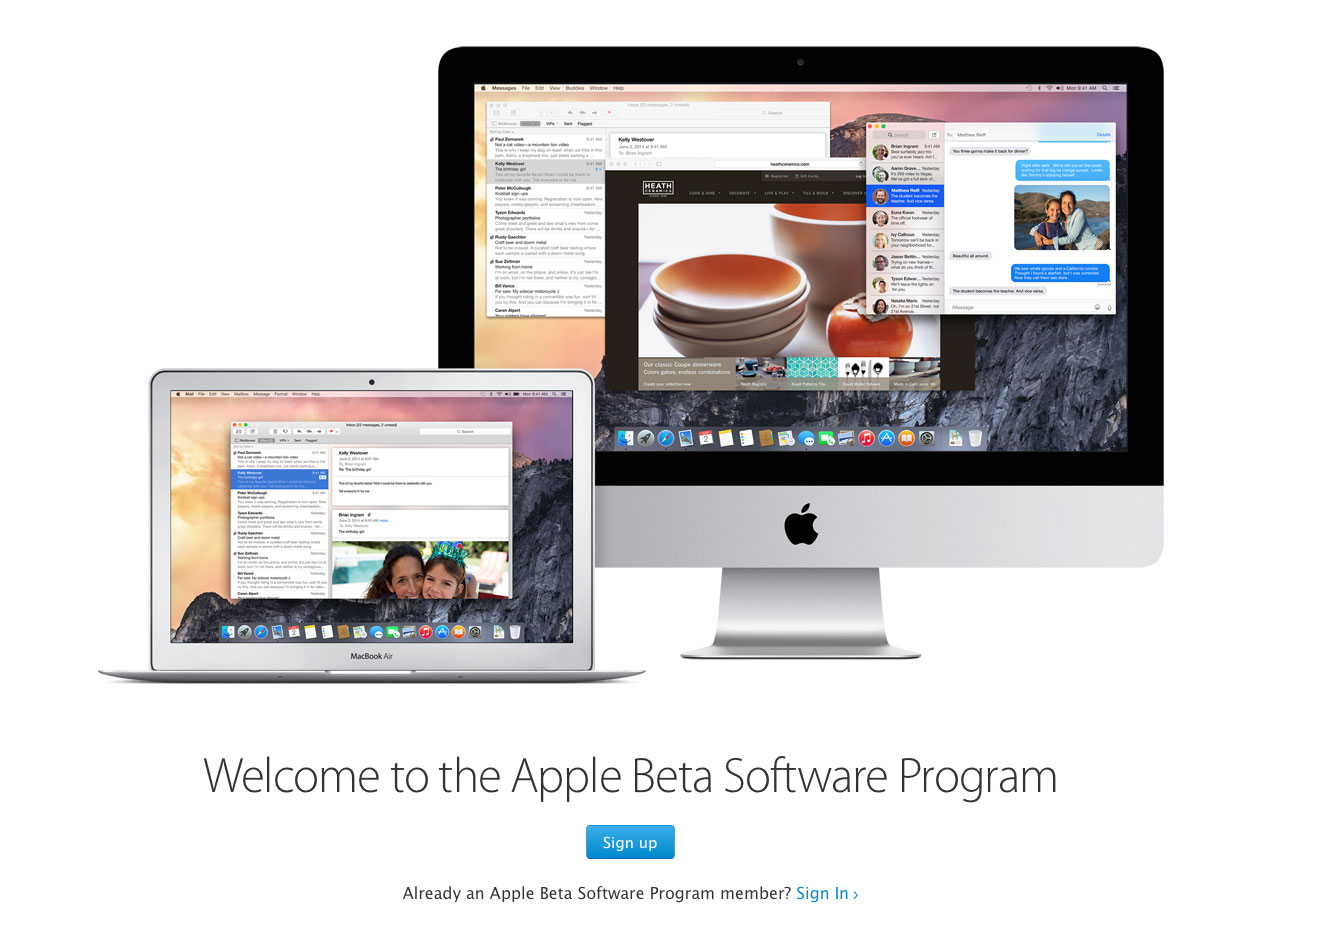 Apple unveils a new public iOS beta testing program with iOS 8.3